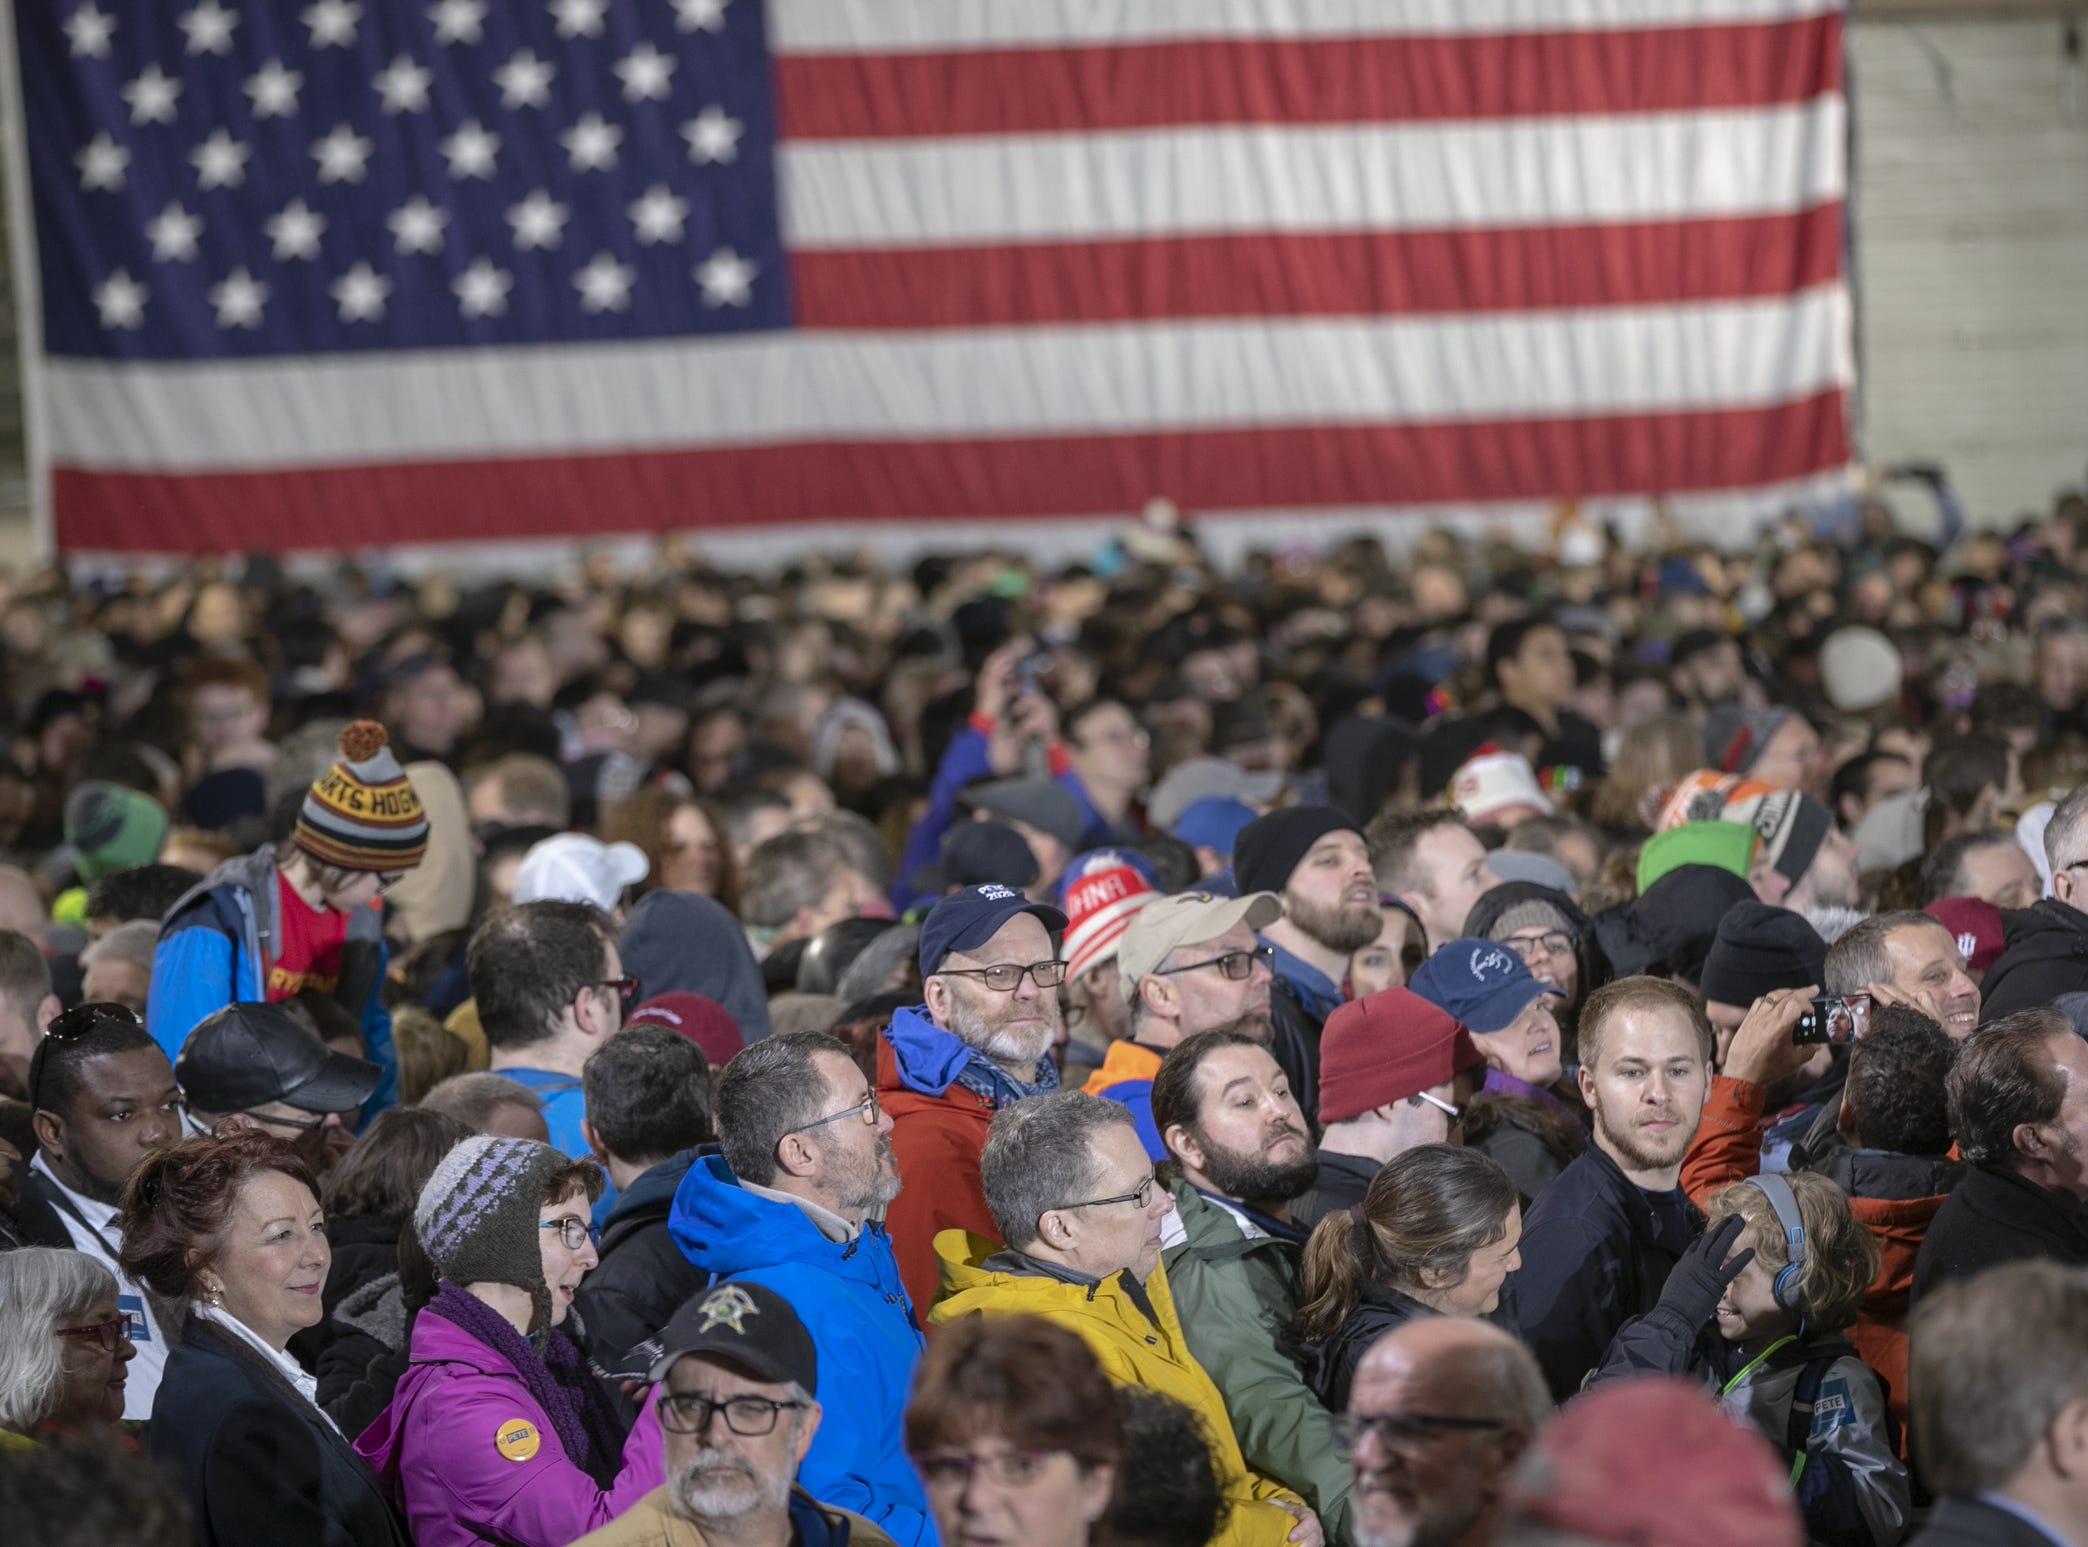 Several thousand people attend a rally for Pete Buttigieg, Mayor of South Bend, who is expected to announce that he is running for U.S. President, South Bend, Sunday, April 14, 2019.